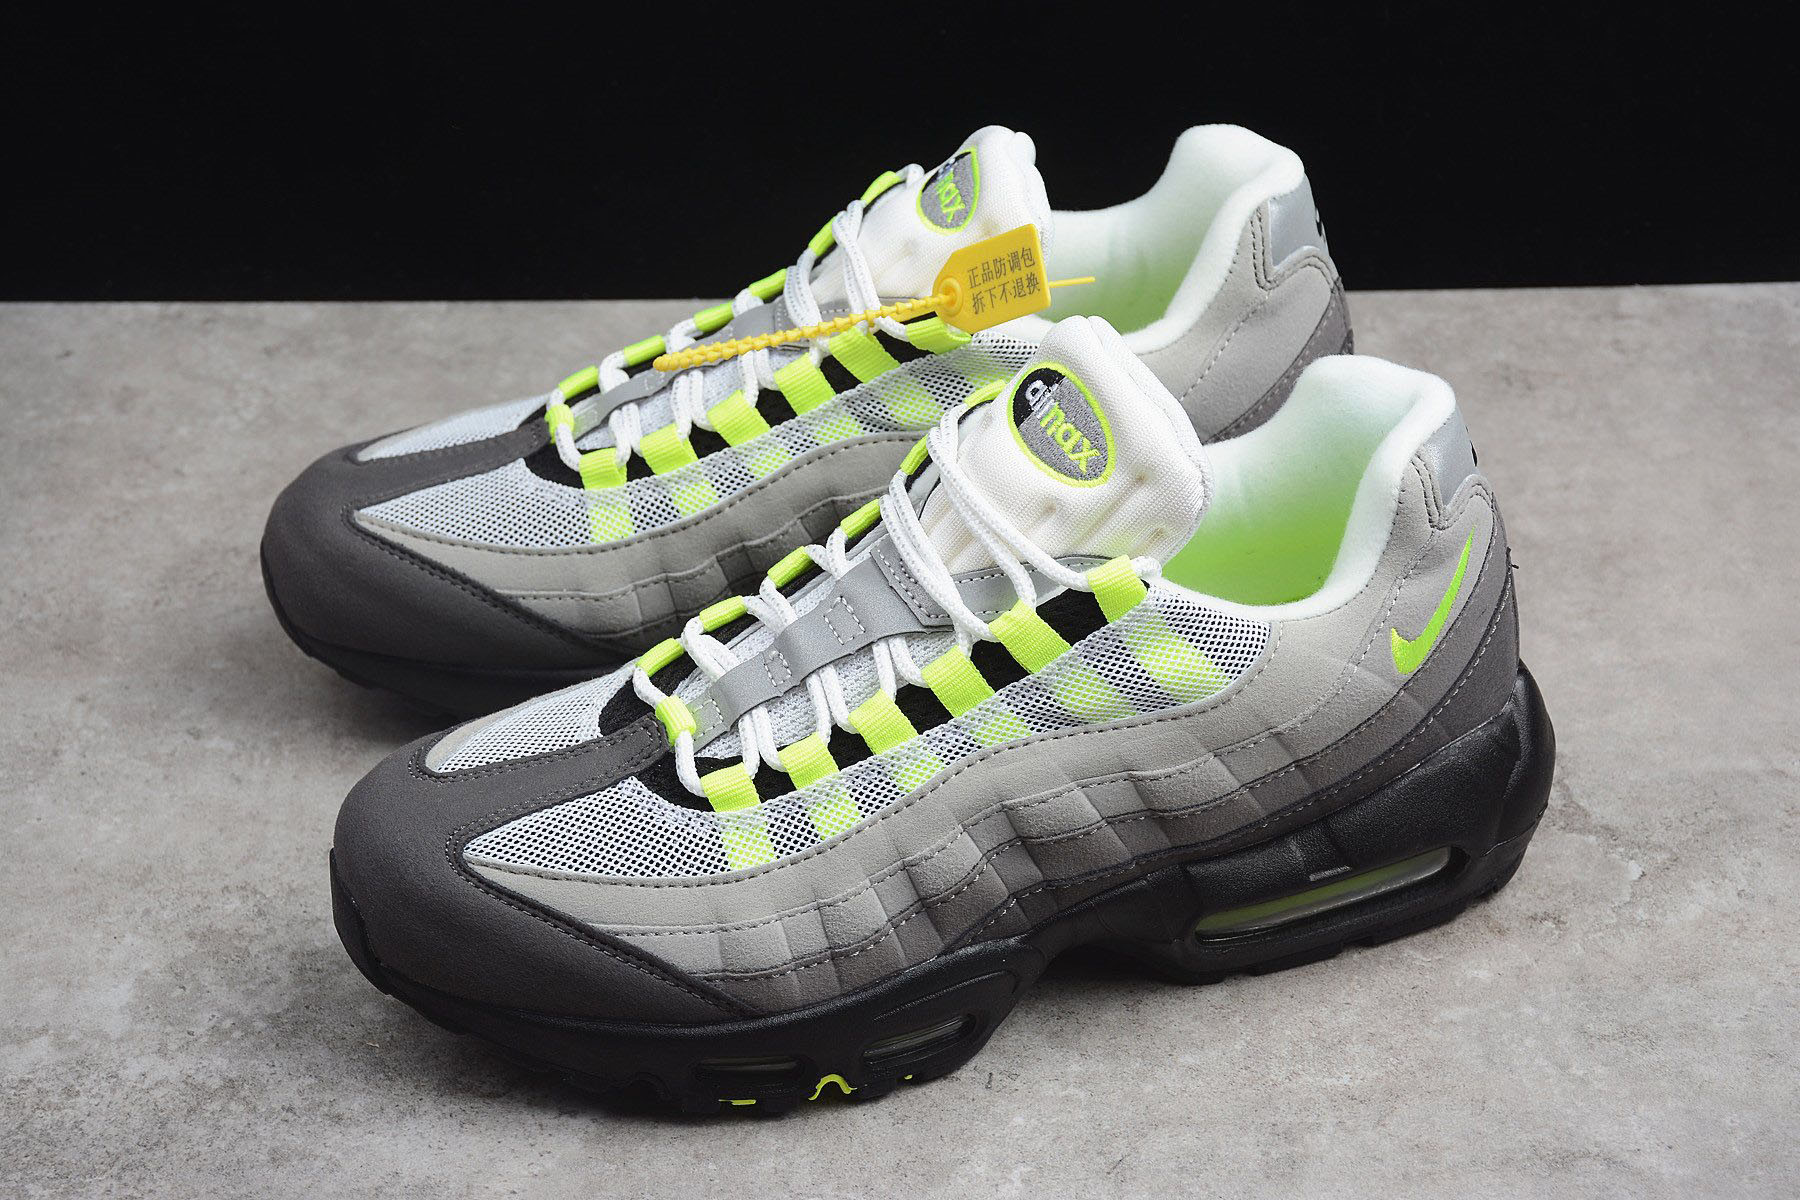 Nike Air Max 95 OG Neon BlackVolt Medium Ash Dark Pewter